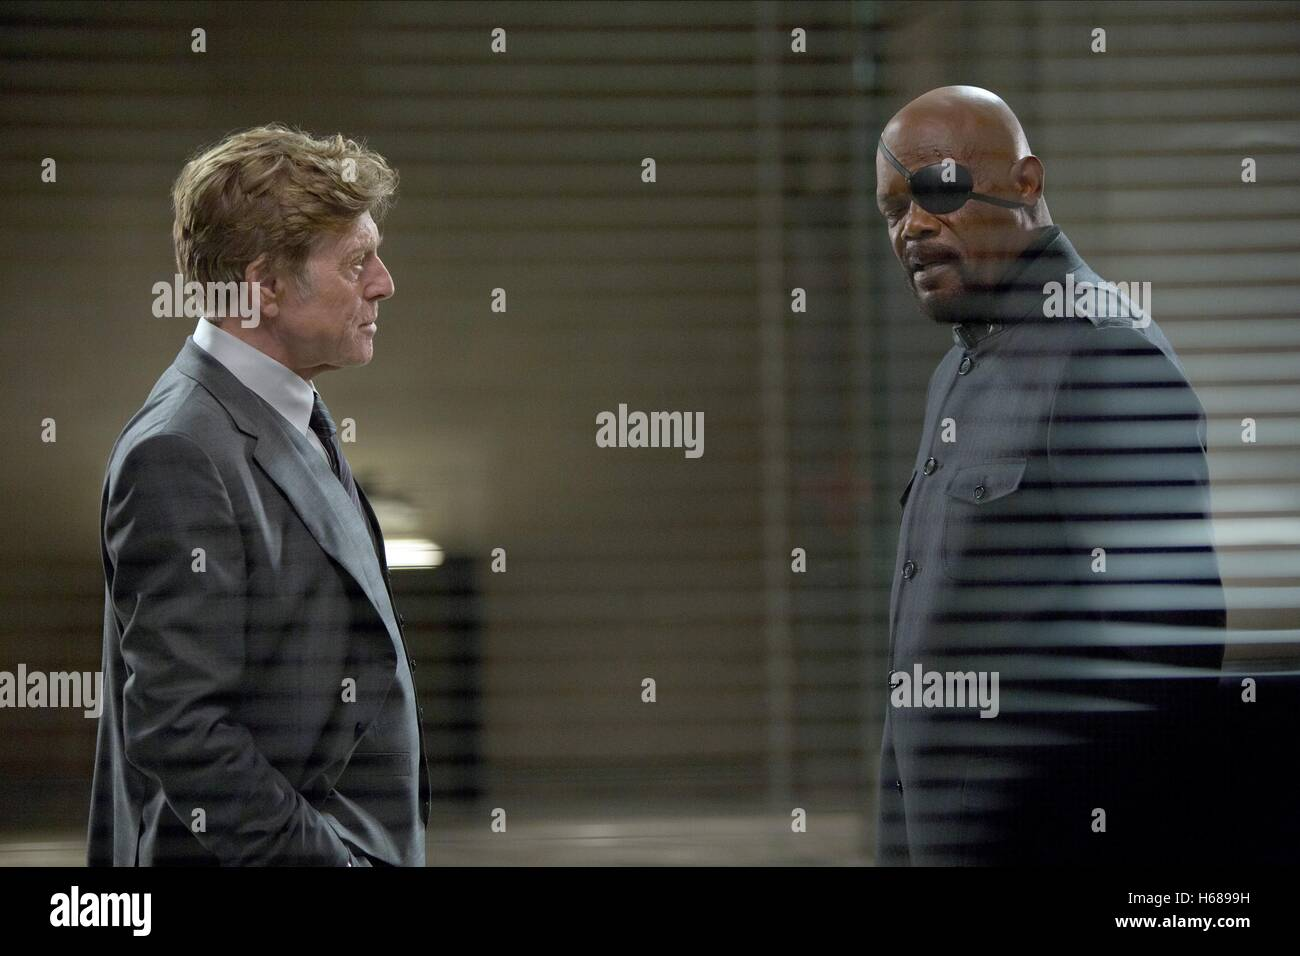 ROBERT REDFORD & SAMUEL L. JACKSON CAPTAIN AMERICA: THE WINTER SOLDIER (2014) - Stock Image